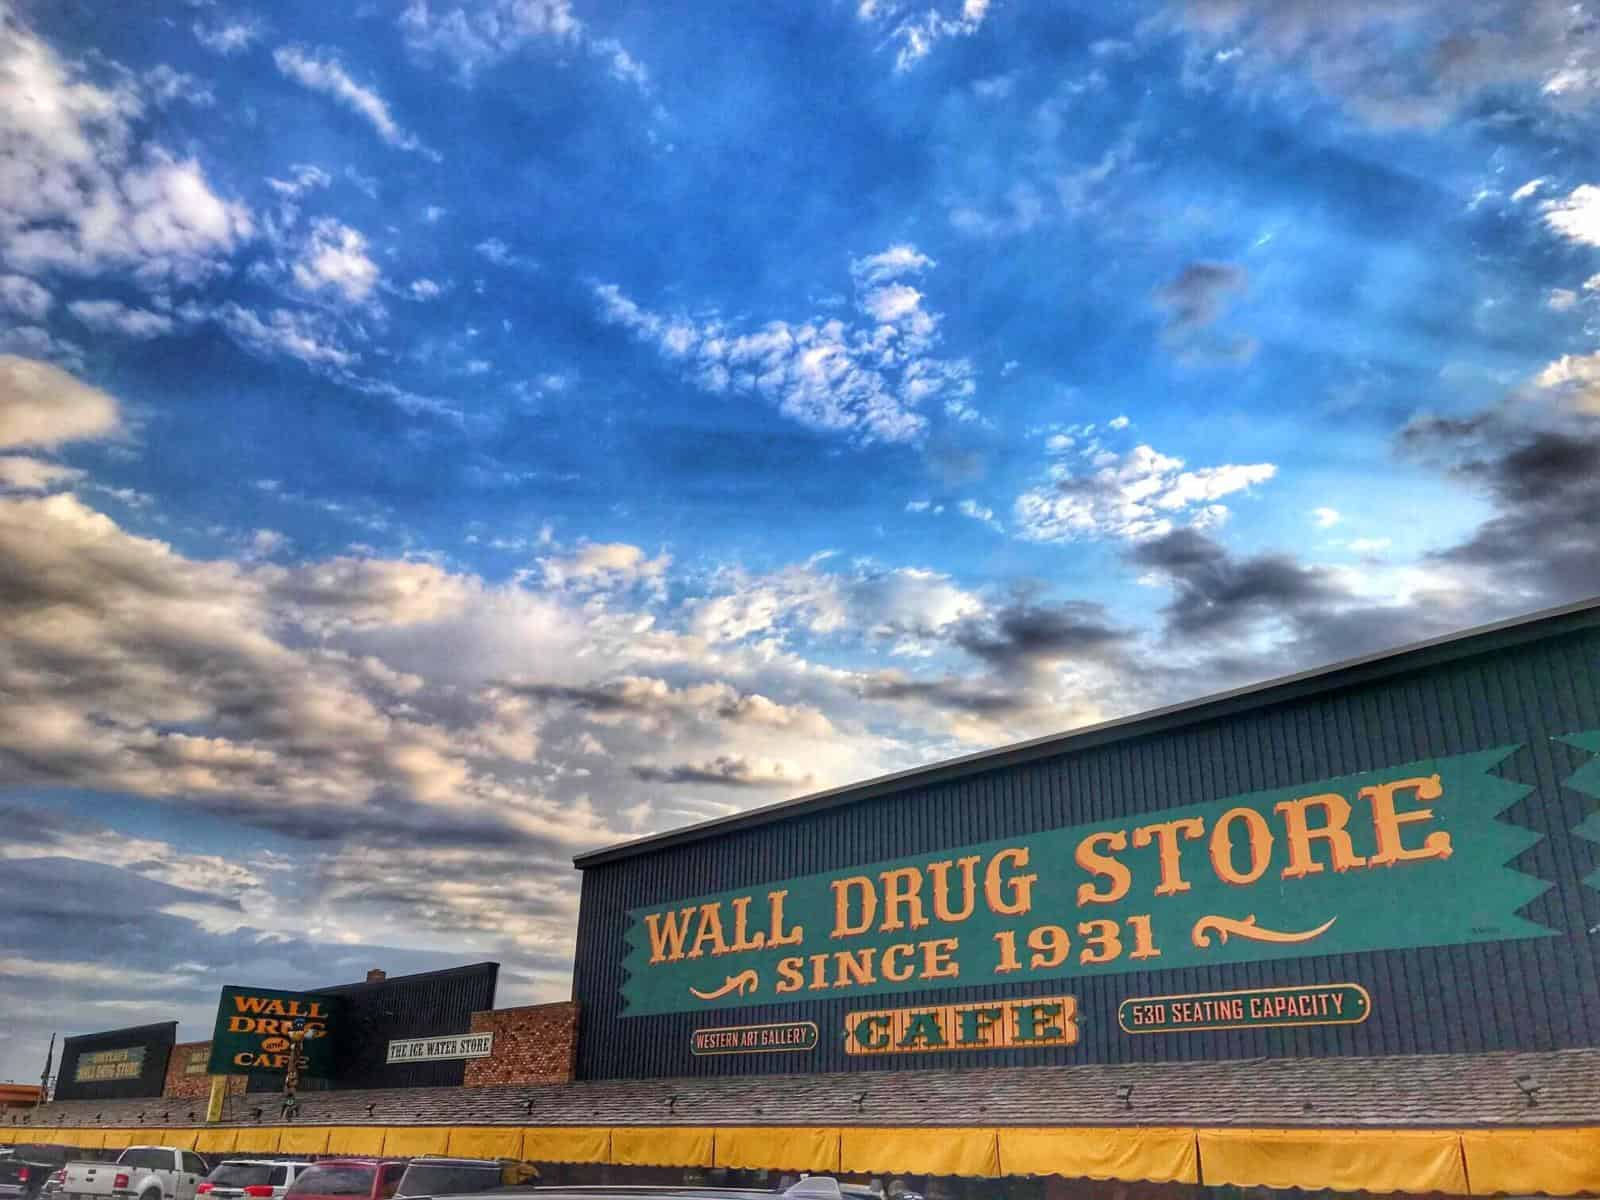 No South Dakota itinerary is complete without stopping at Wall Drug